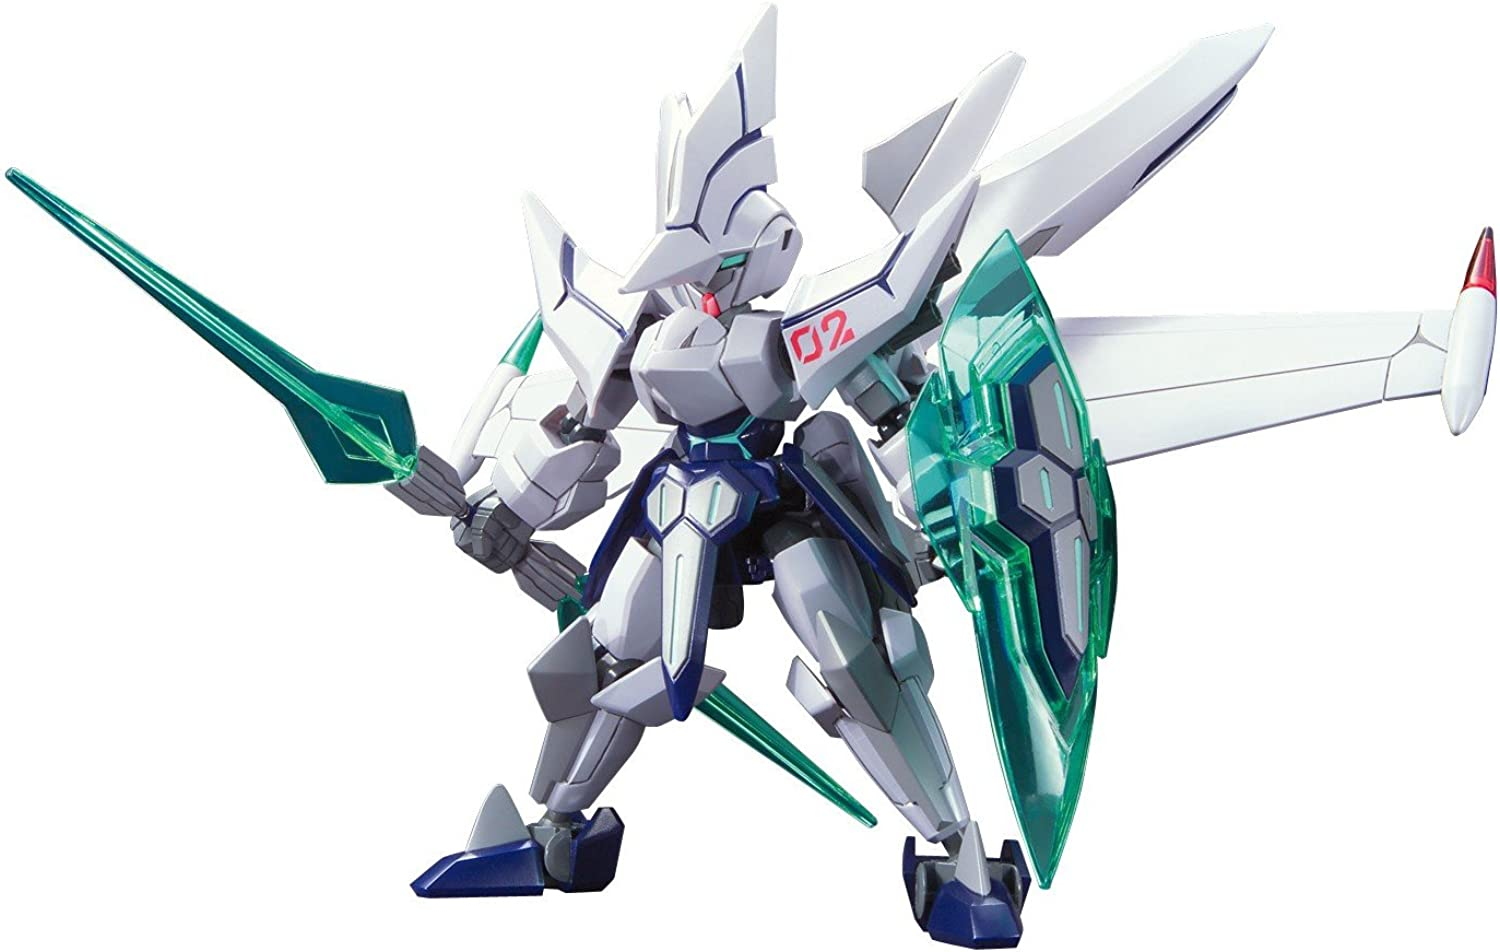 Little Battlers eXperience W - LBX 038 Odin Mk-2 (Plastic model)